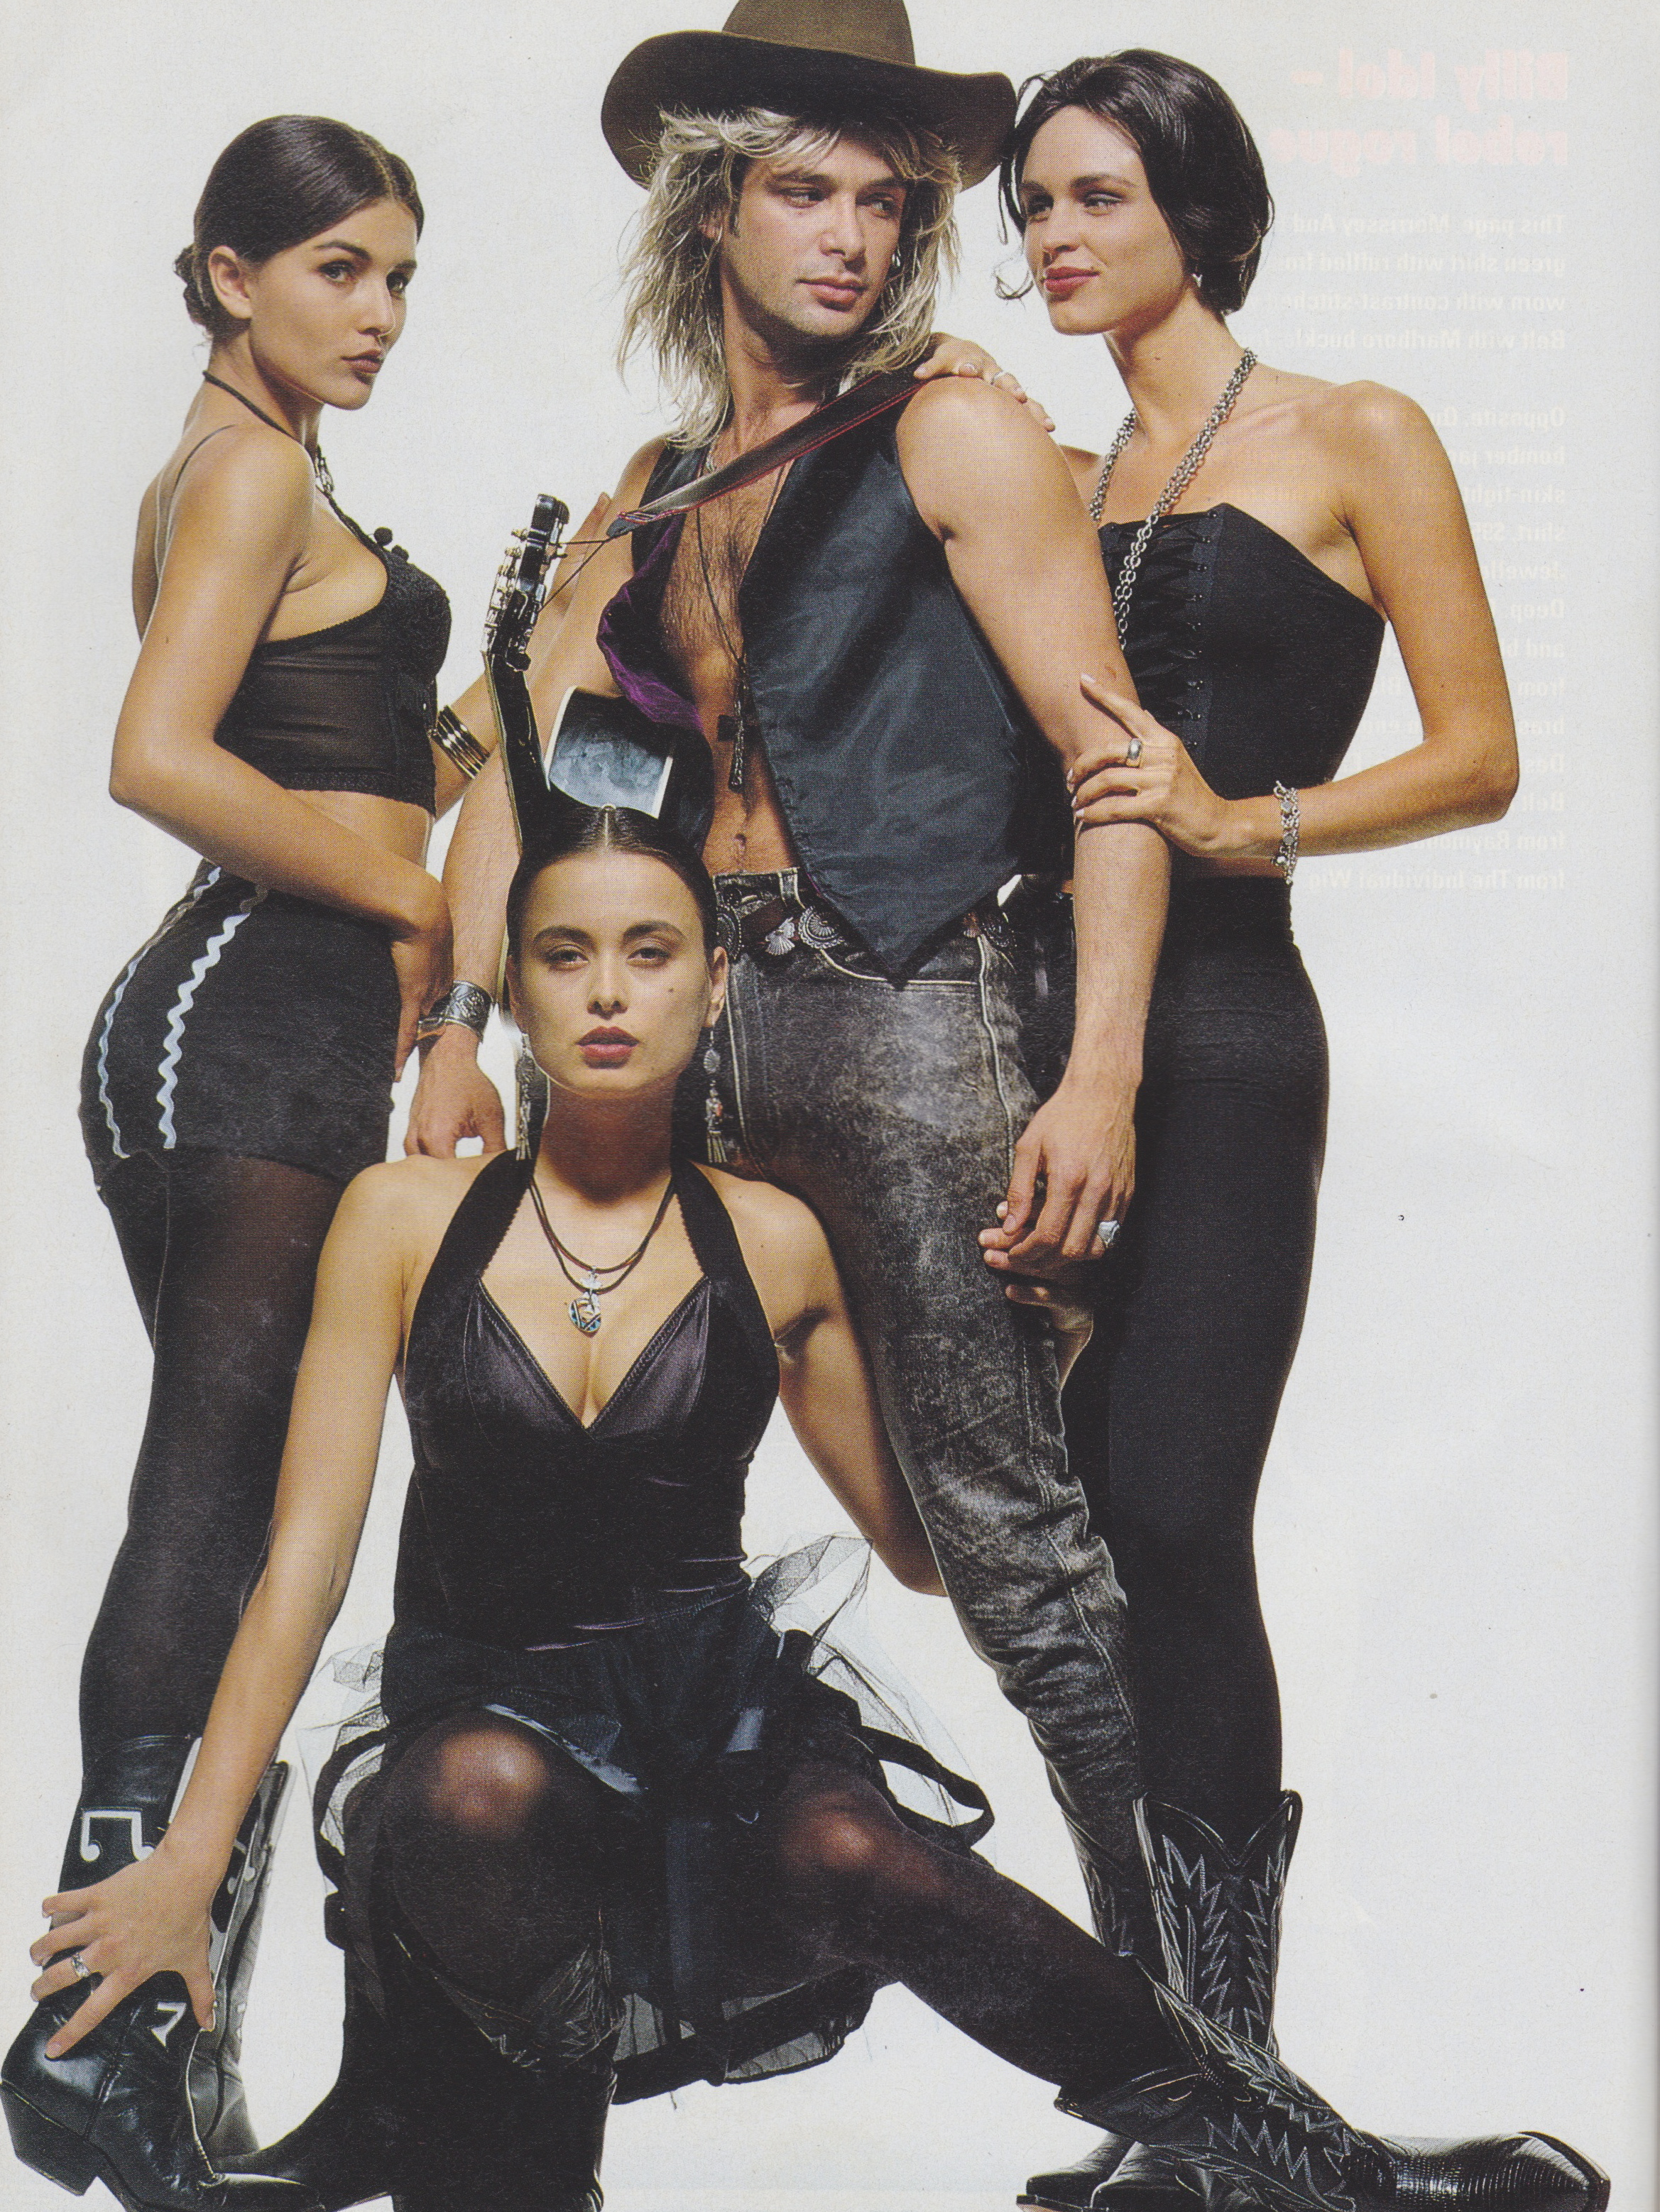 Cosmopolitan September 1991 | Rock n Role Models (Toneya Bird, Francoise Skeates & 2 Unknowns) 09.jpeg